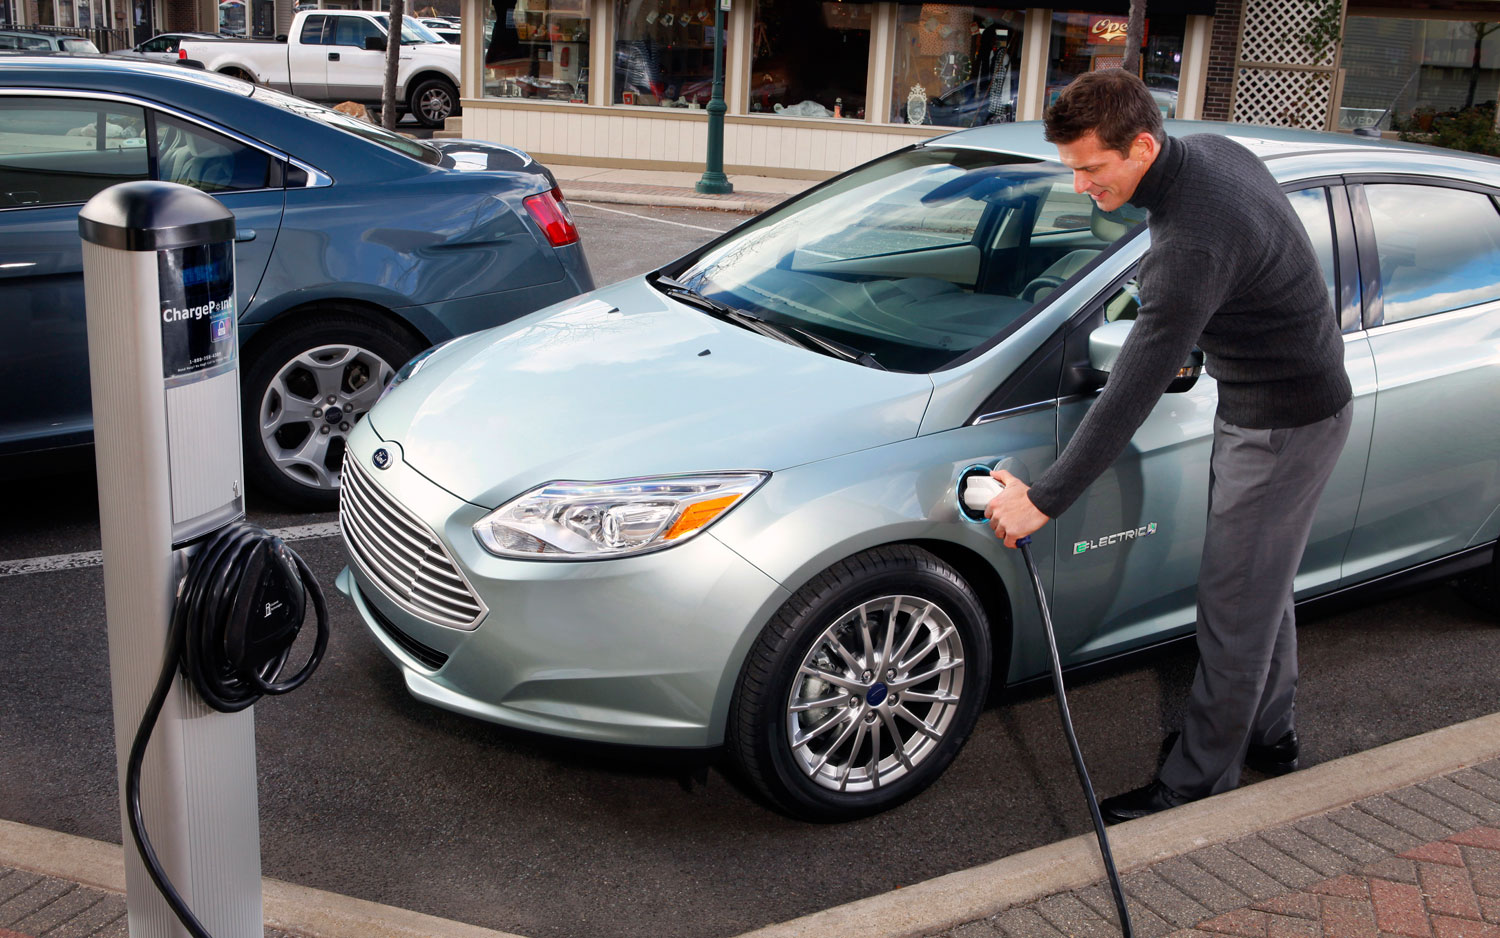 Ford Focus Electric At Chargepoint1